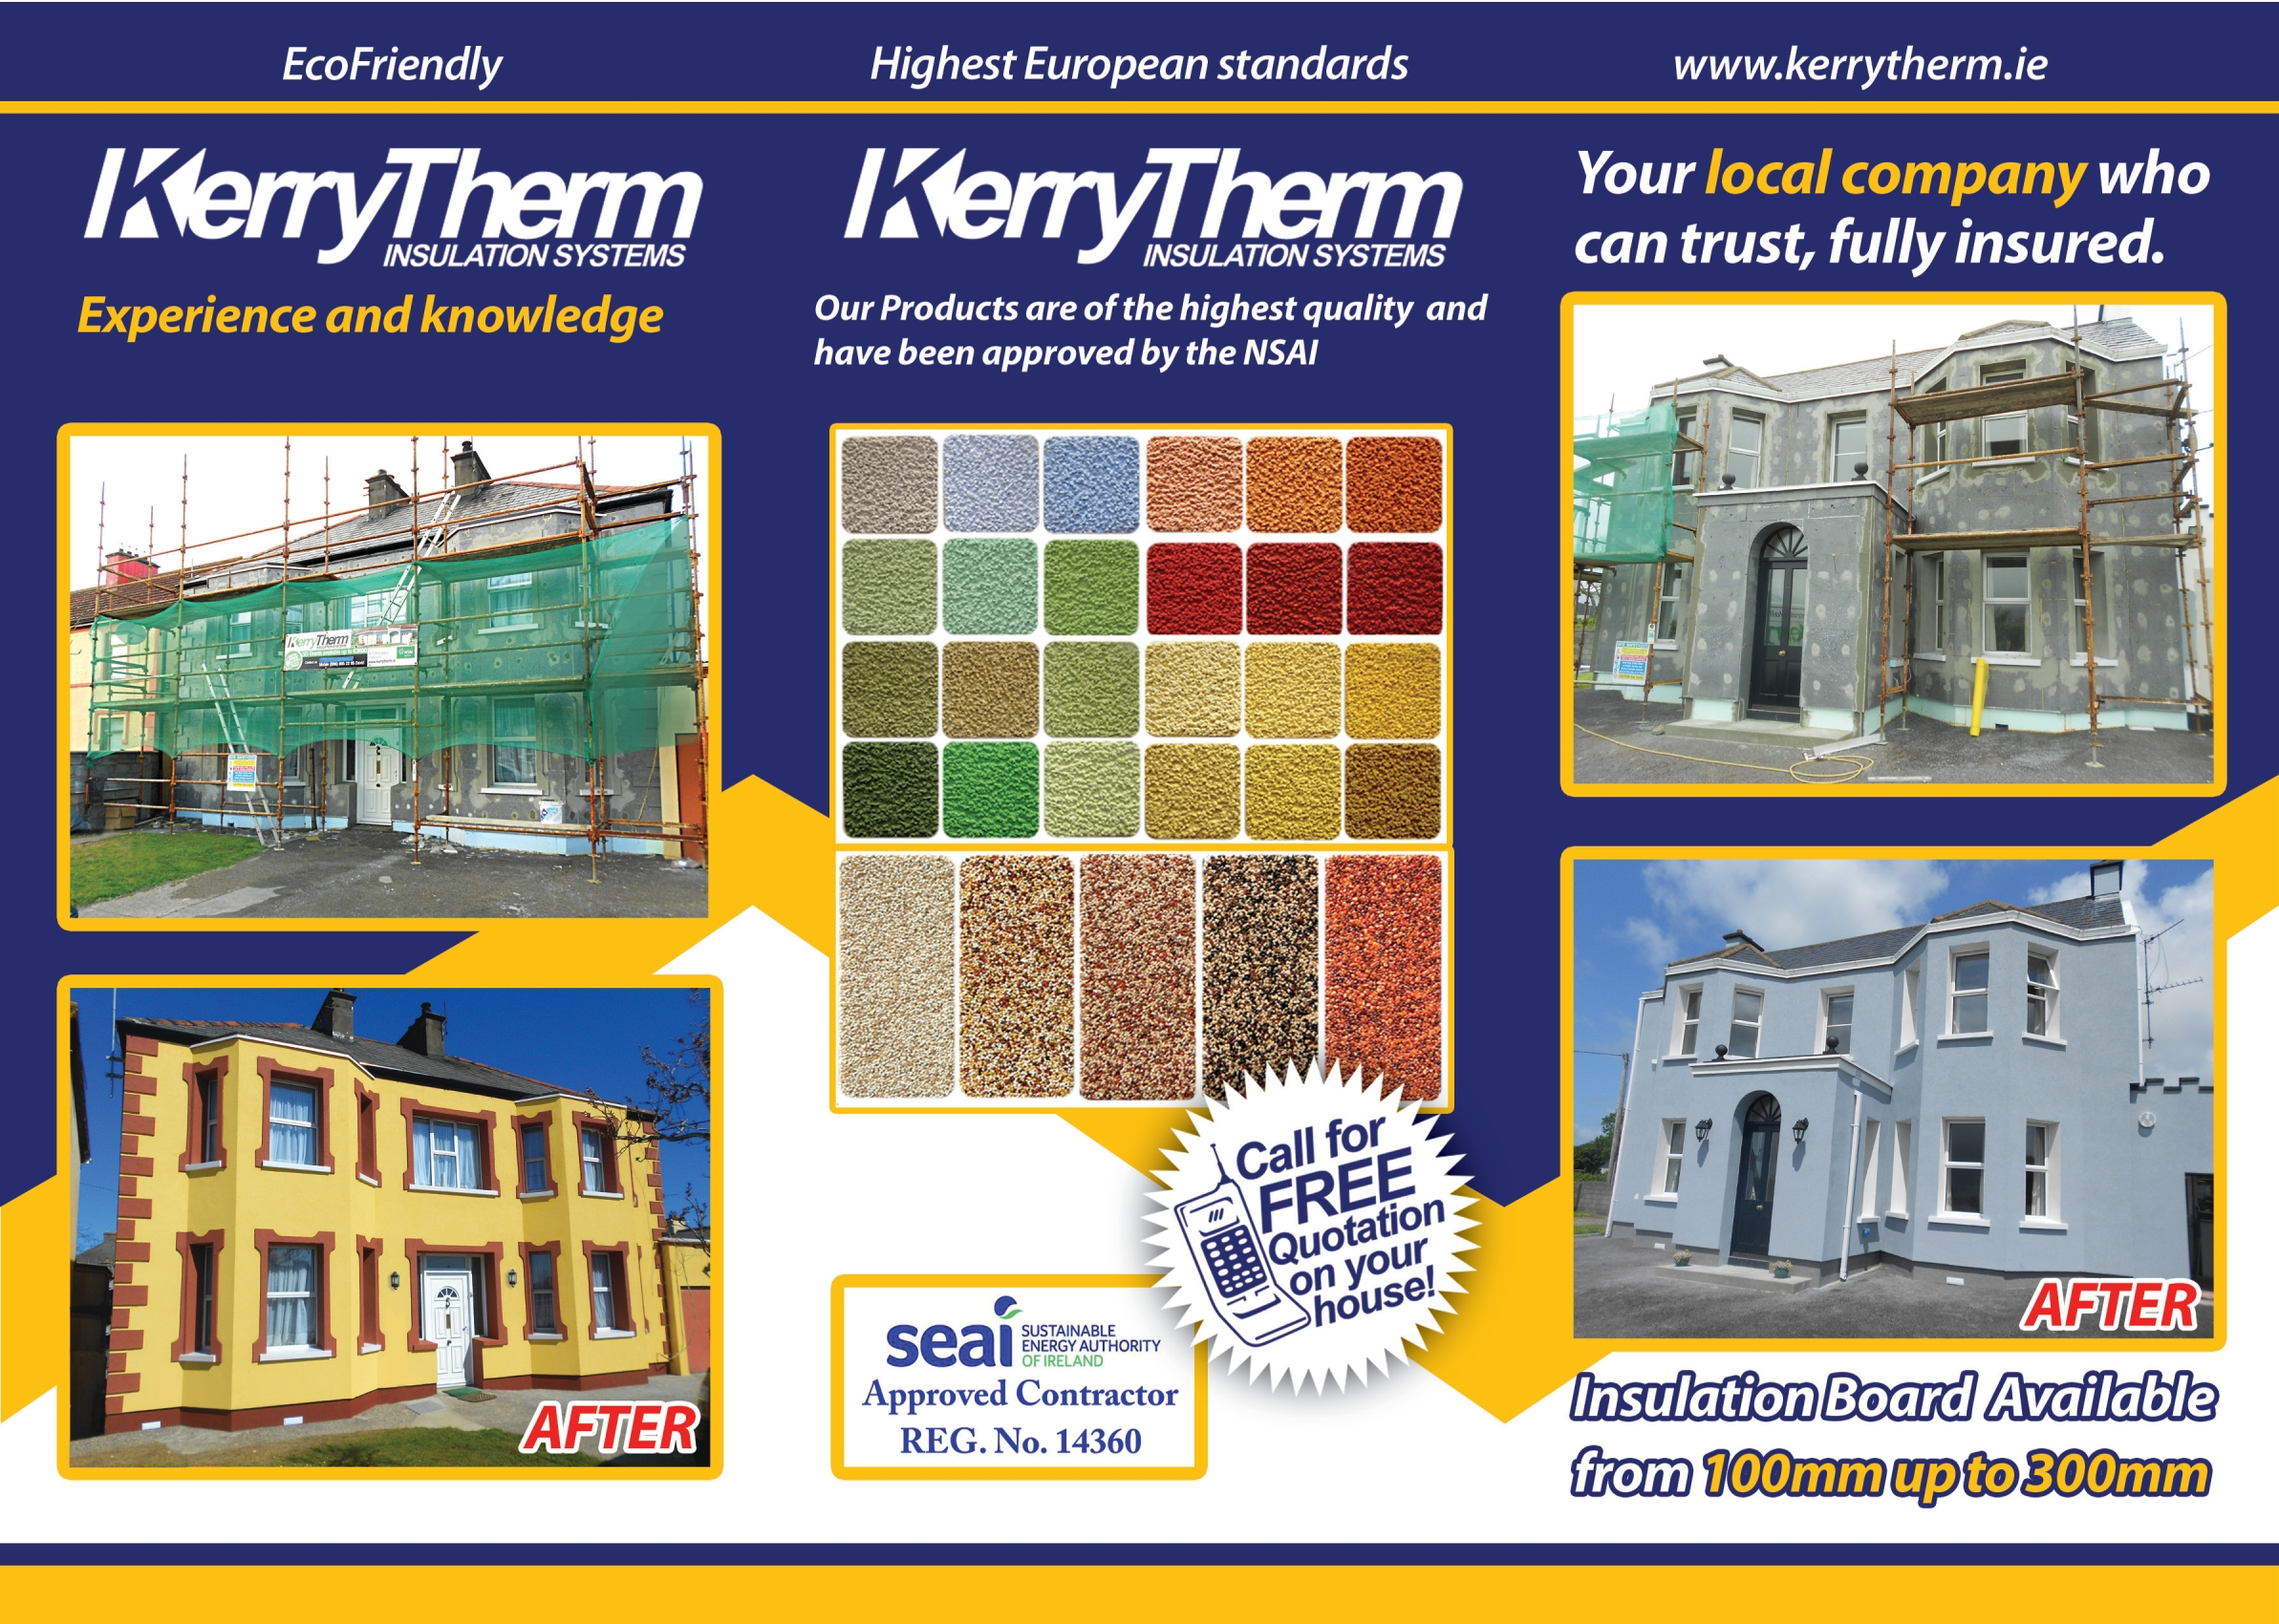 KerryTherm Insulation Systems